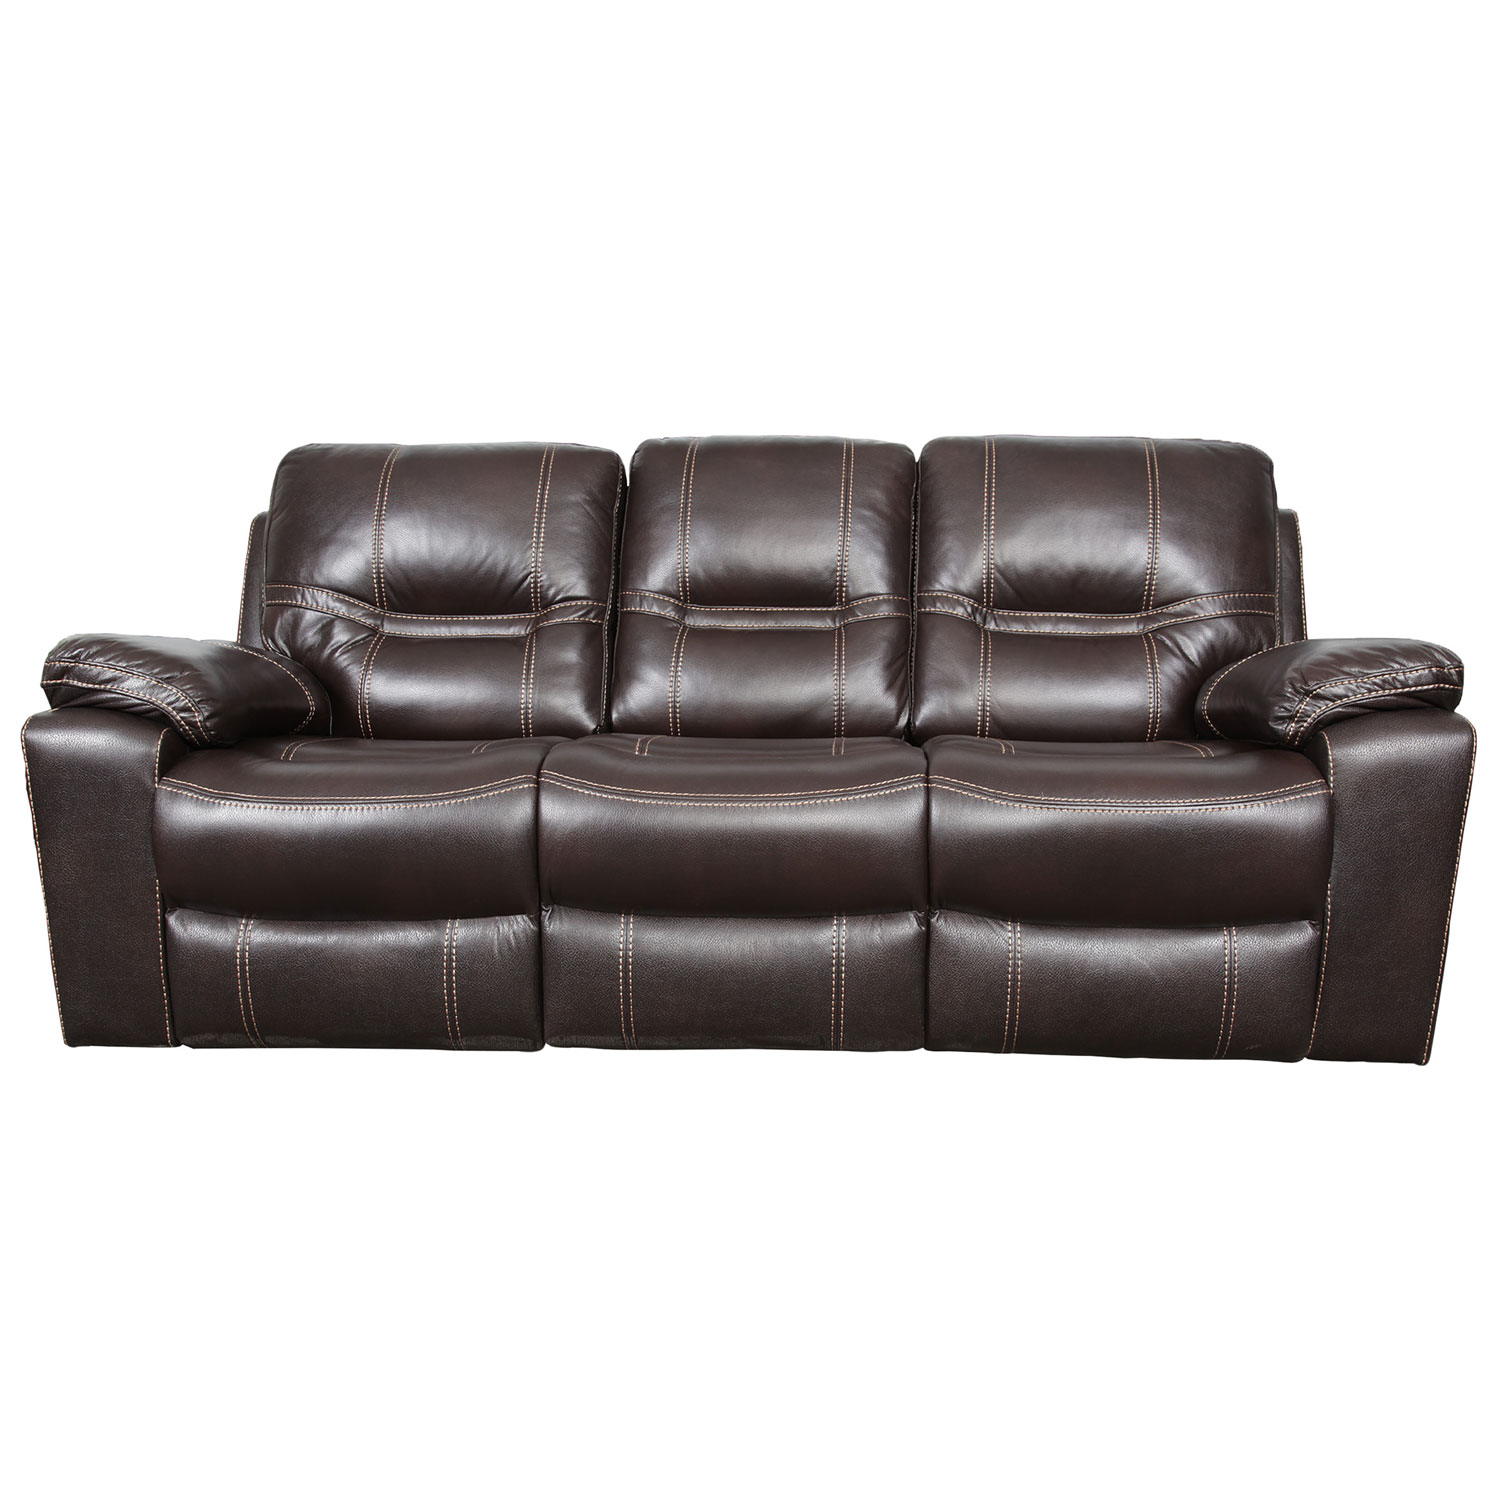 Leather Sofas Canada: William Traditional Bonded Leather Reclining Sofa